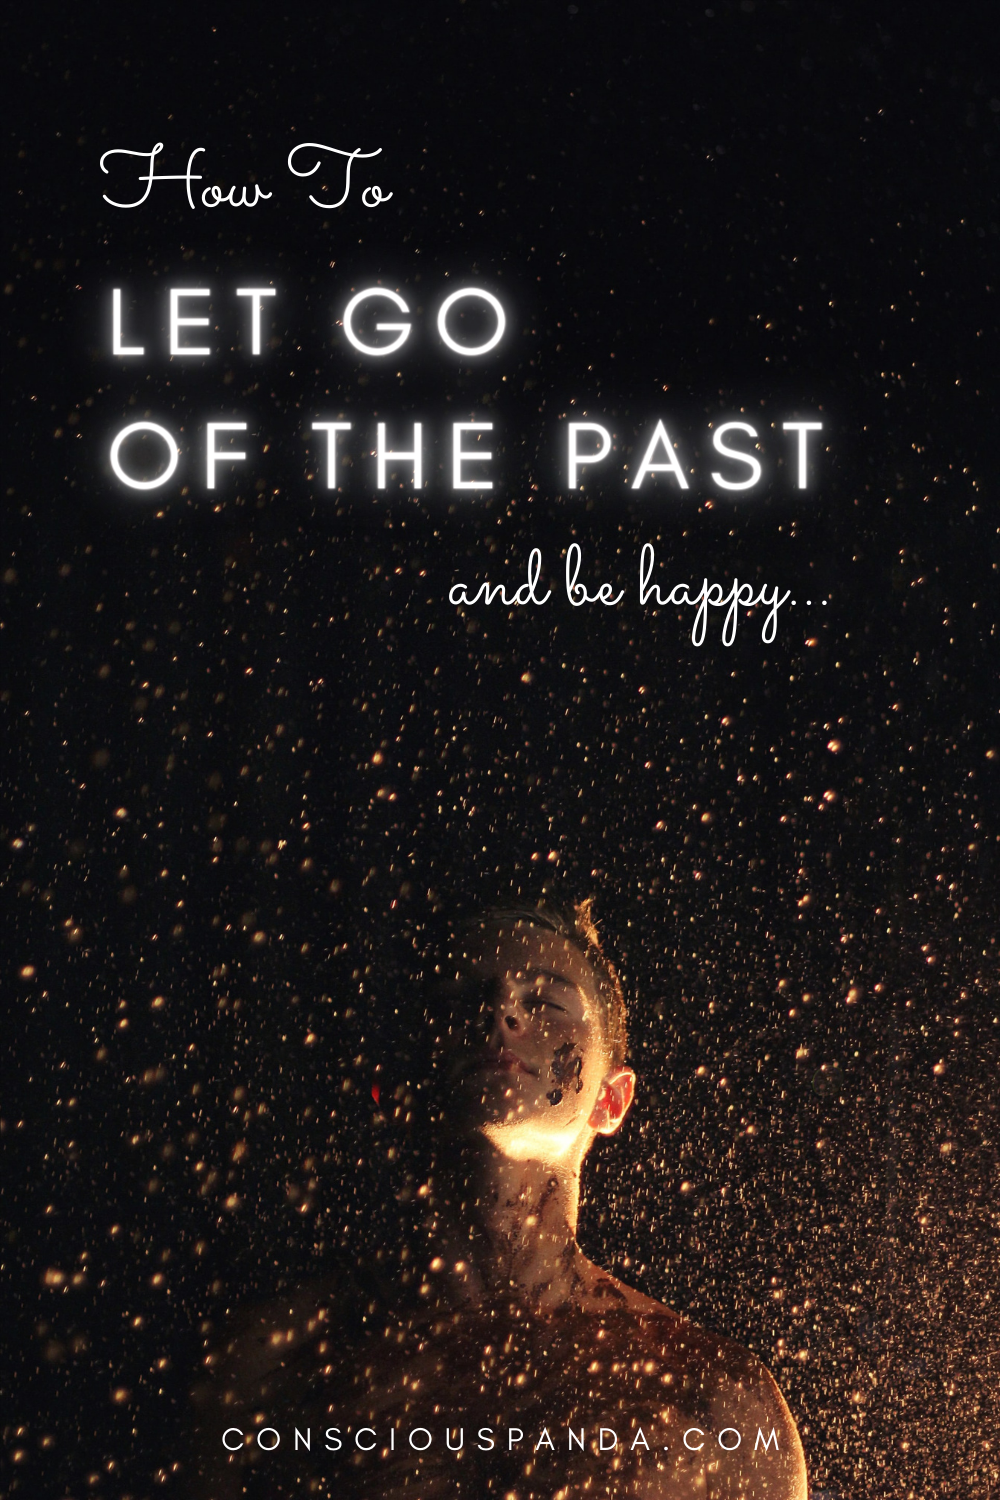 How to Let Go of the Past and Be Happy